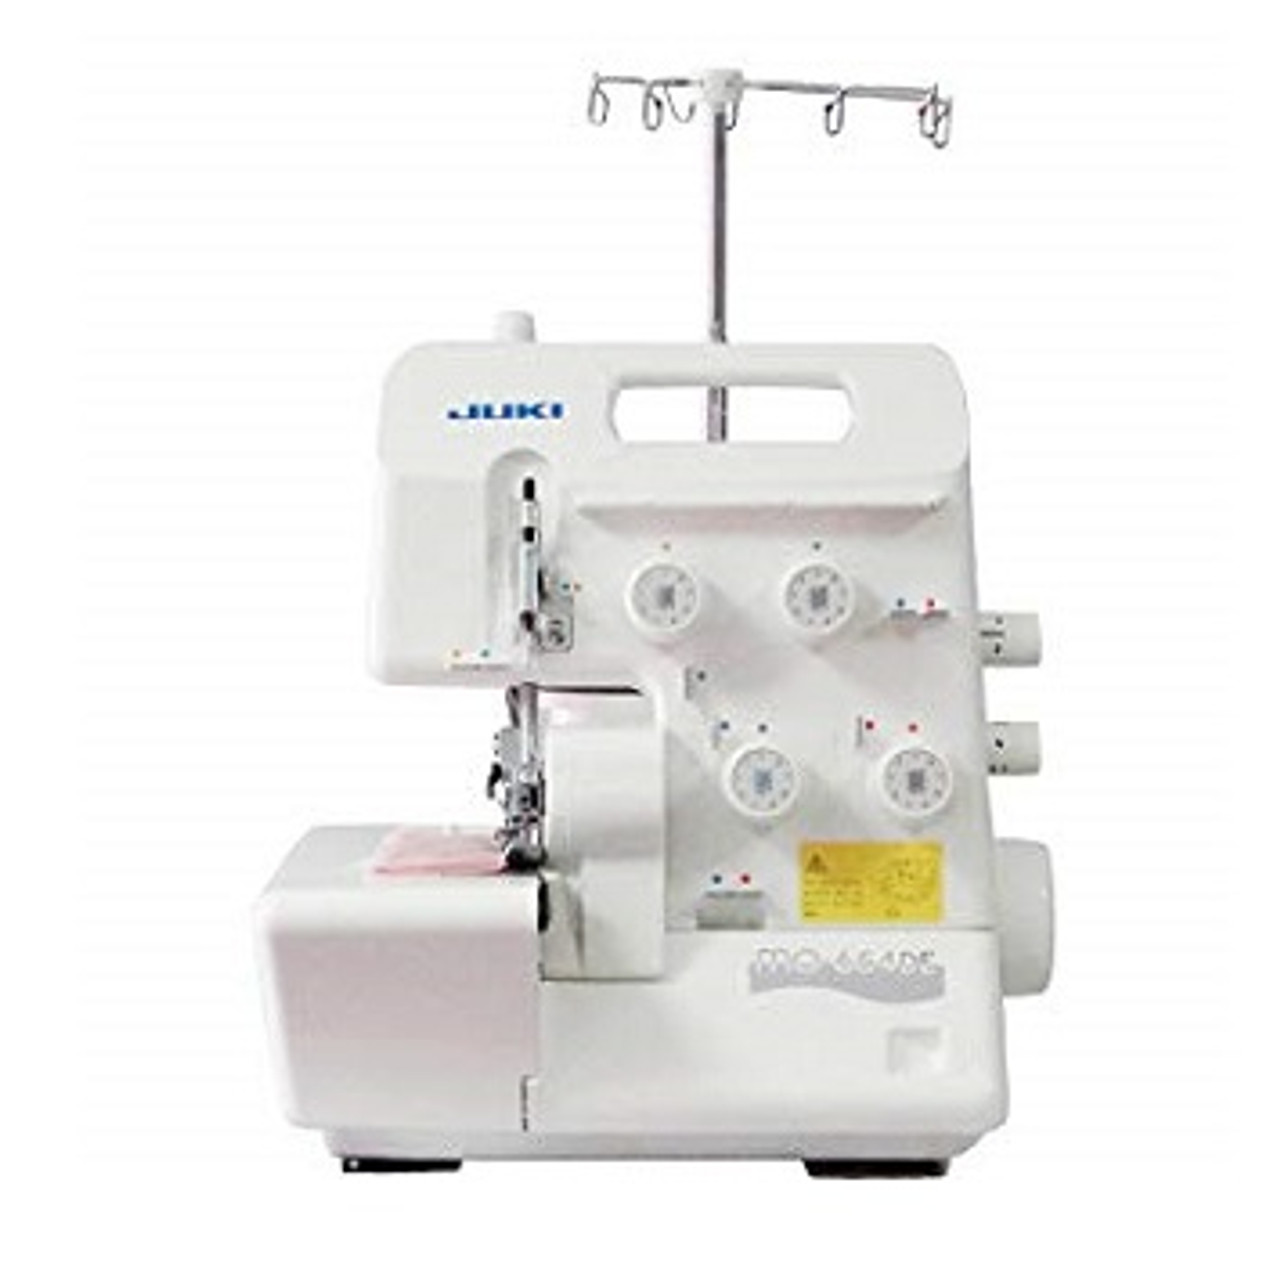 Serger/Overlock/Coverlock Cleaning and Adjusting - $99.99